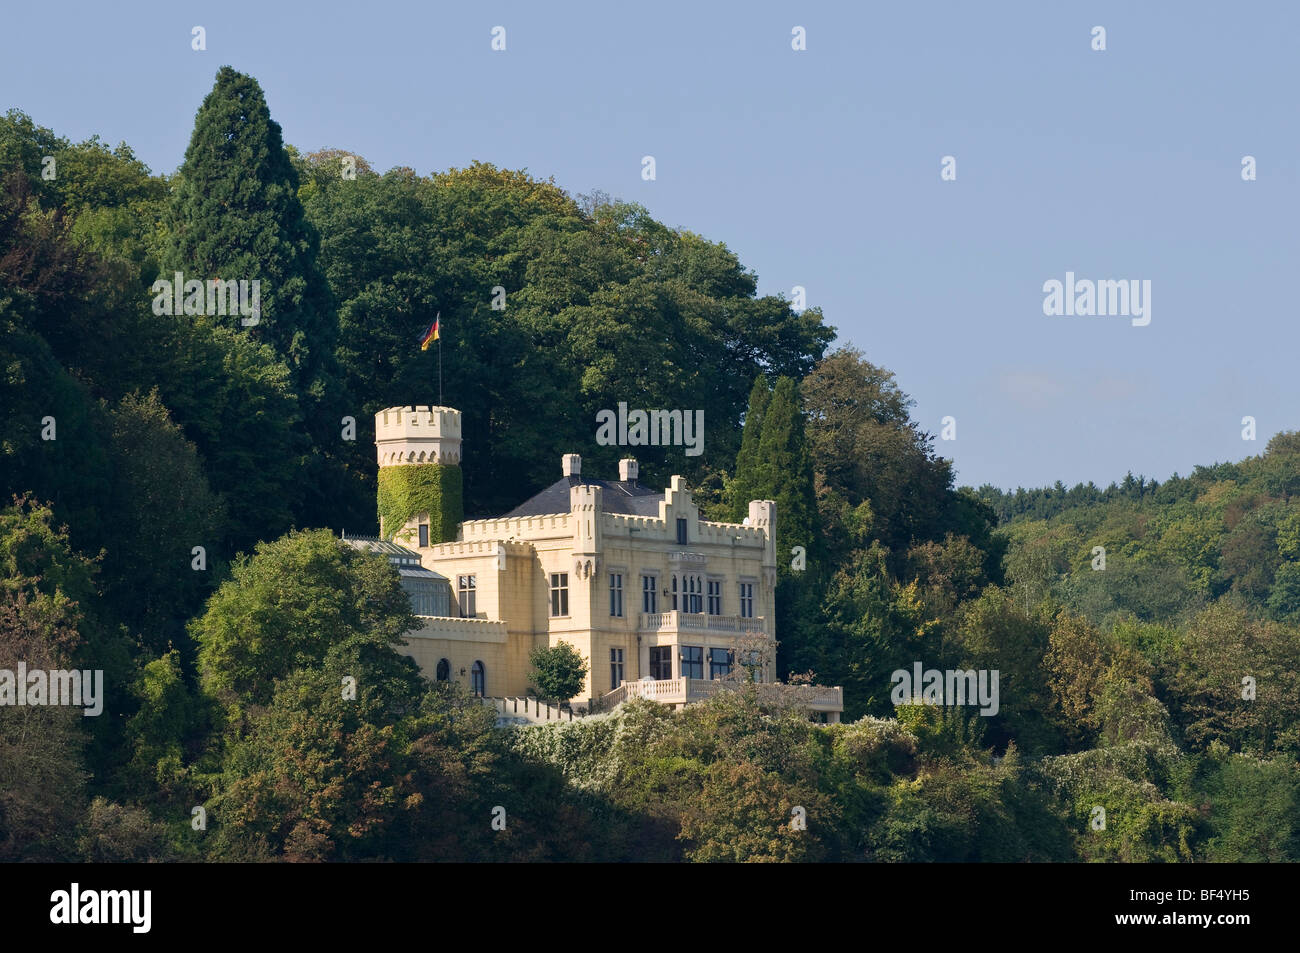 View from the Rhine River to Marienfels Palace, residence of Thomas Gottschalk, Rhineland-Palatinate, Germany, Europe - Stock Image